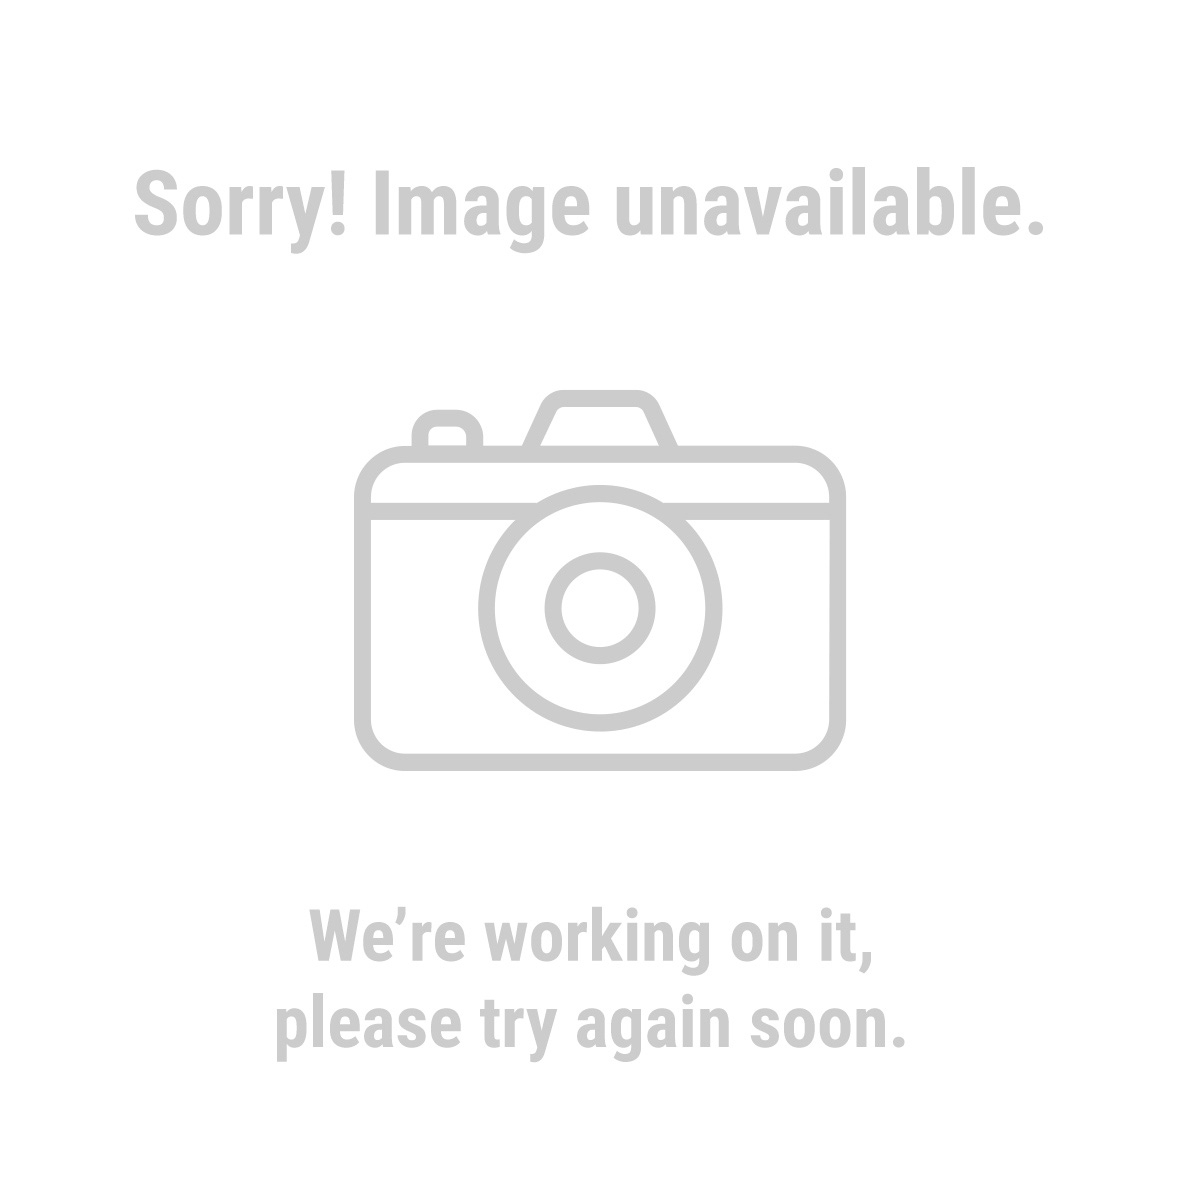 Haul-Master 41005 1000 Lb. Swing-Back Trailer Jack